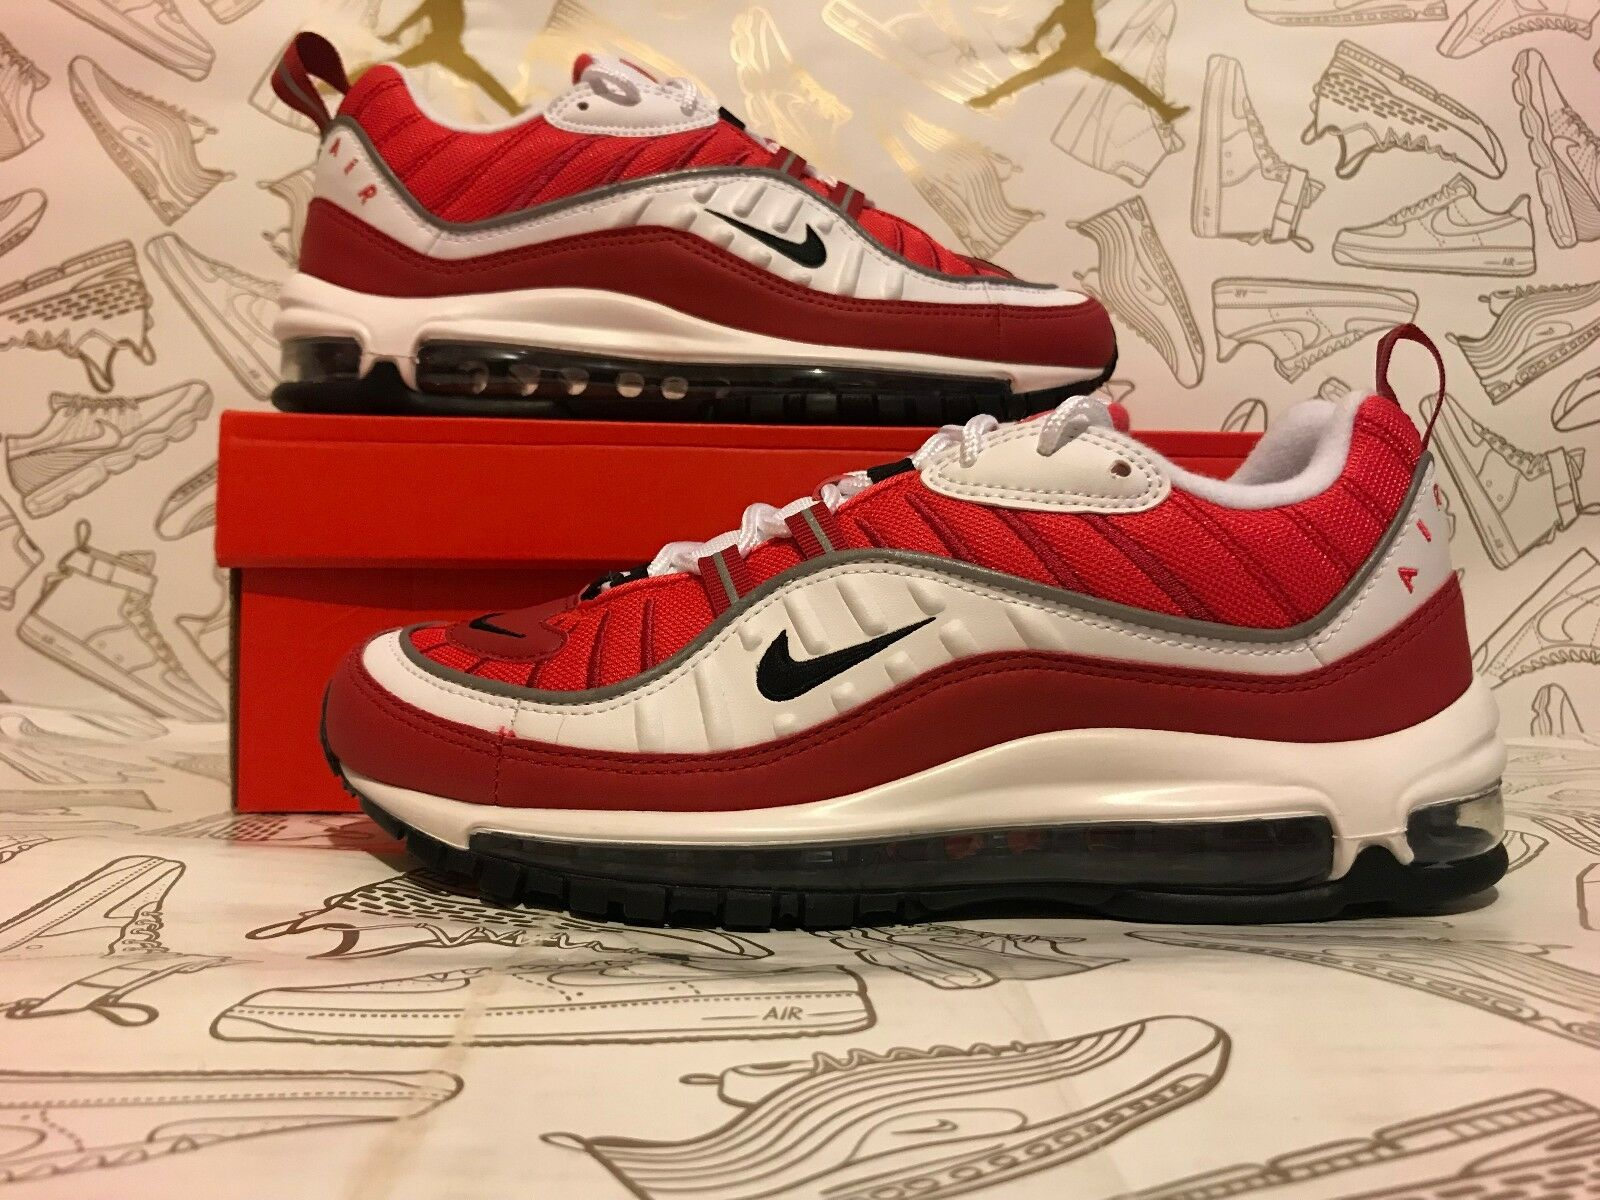 New Nike W Air Max 98 Gym Red Valentines Day Women Price reduction